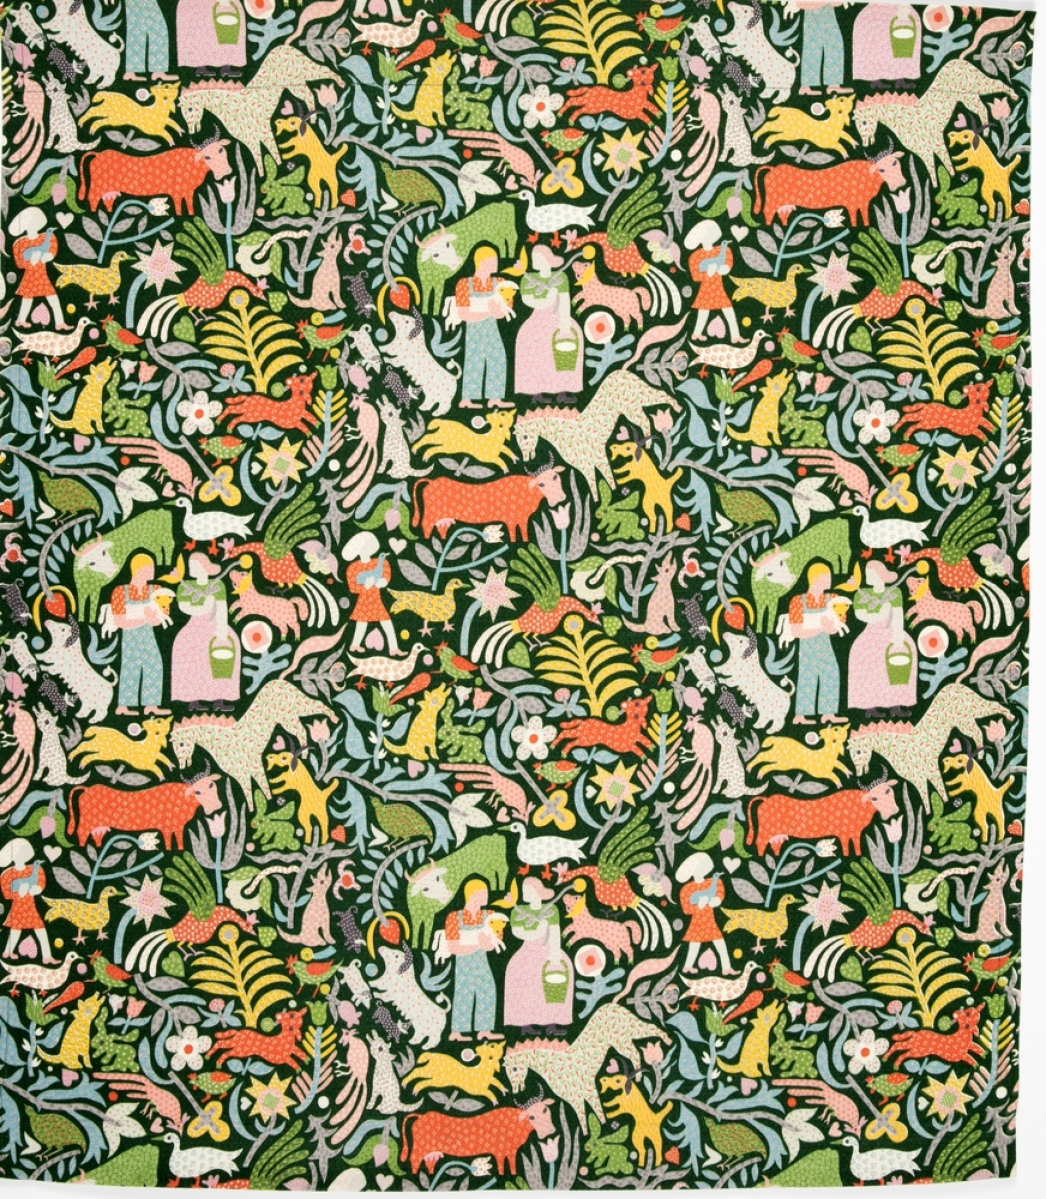 Textile, Calico Cow, 1952; cotton; 38¼ by 33¼ inches; American Textile History Museum Collection, gift of Michele Palmer; acc. #2017-24-7